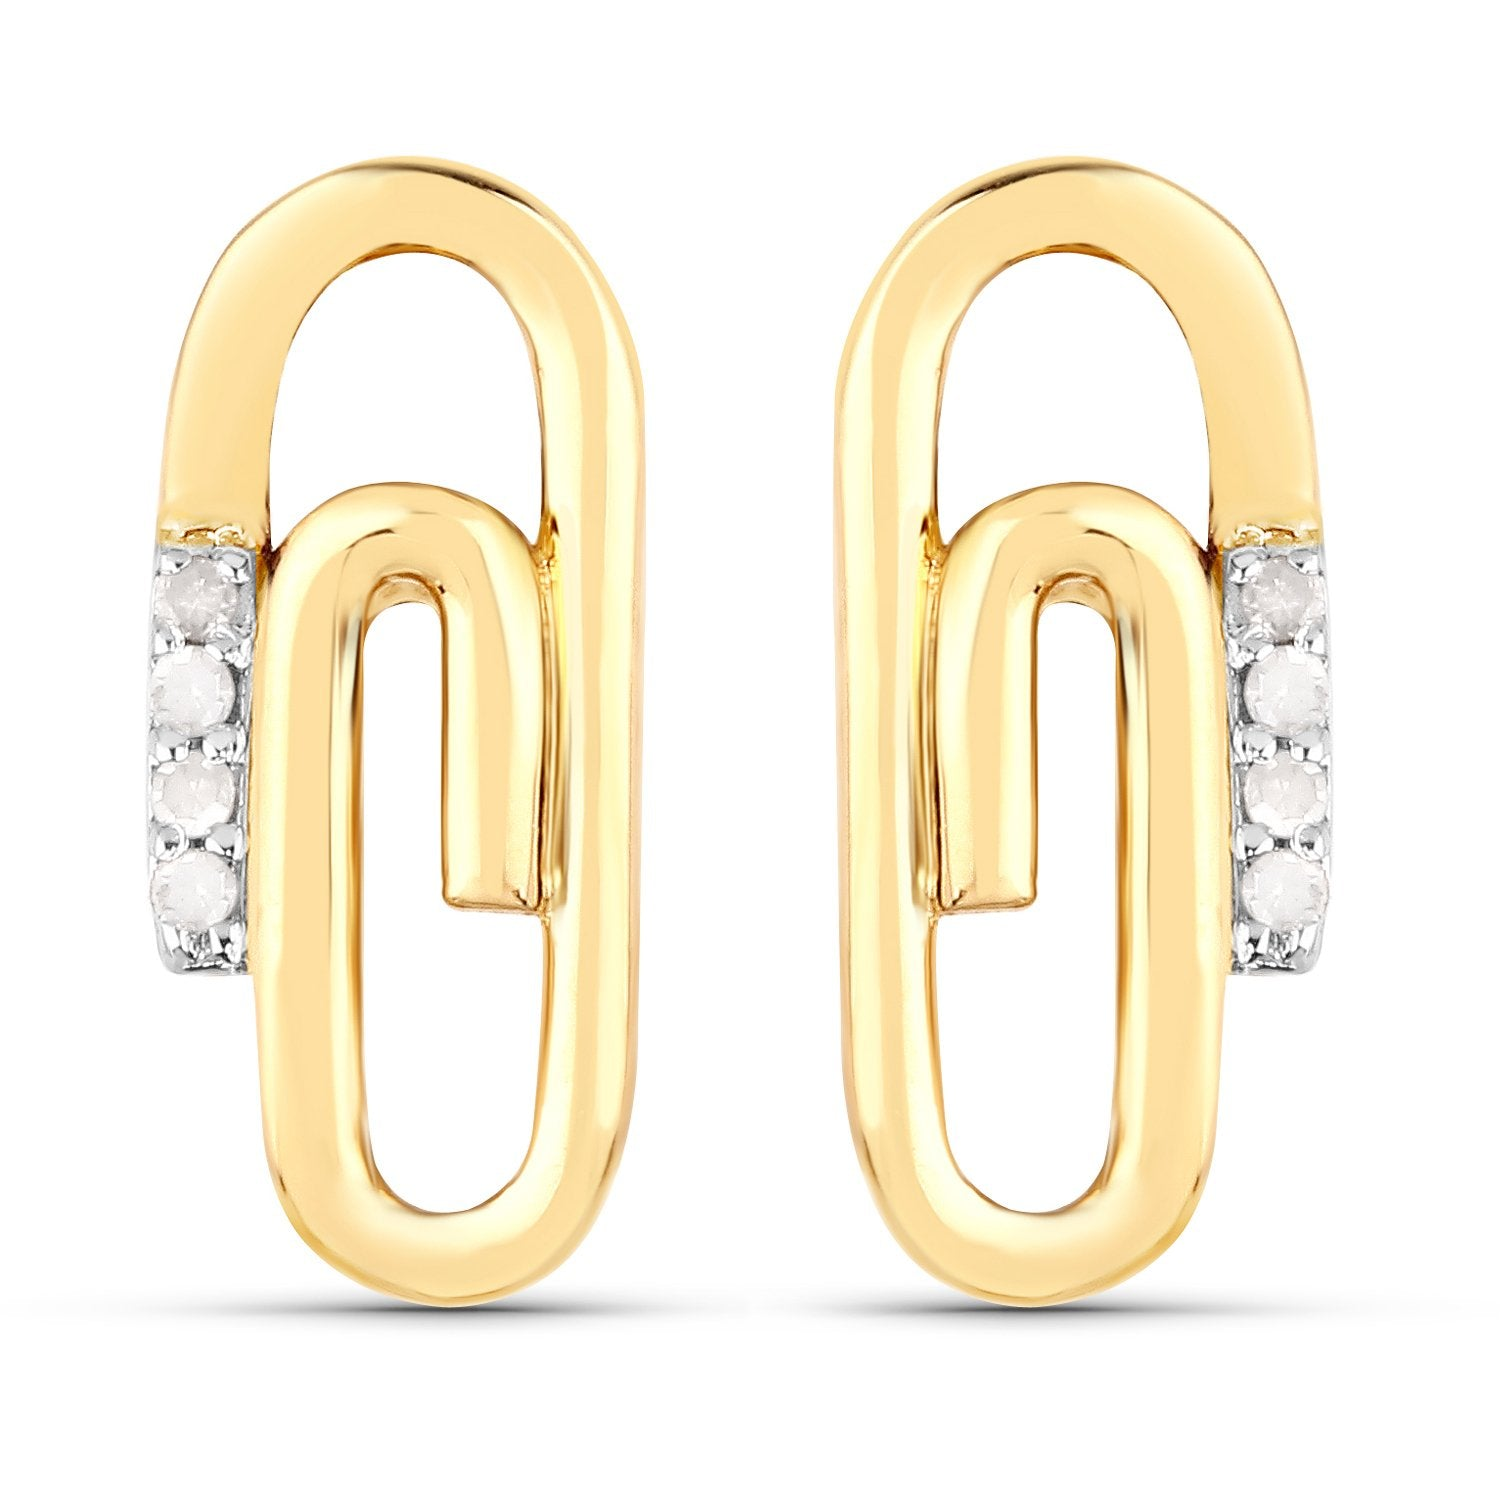 LoveHuang 0.04 Carats Genuine White Diamond (I-J, I2-I3) Paperclip Stud Earrings Solid .925 Sterling Silver With 18KT Yellow Gold Plating